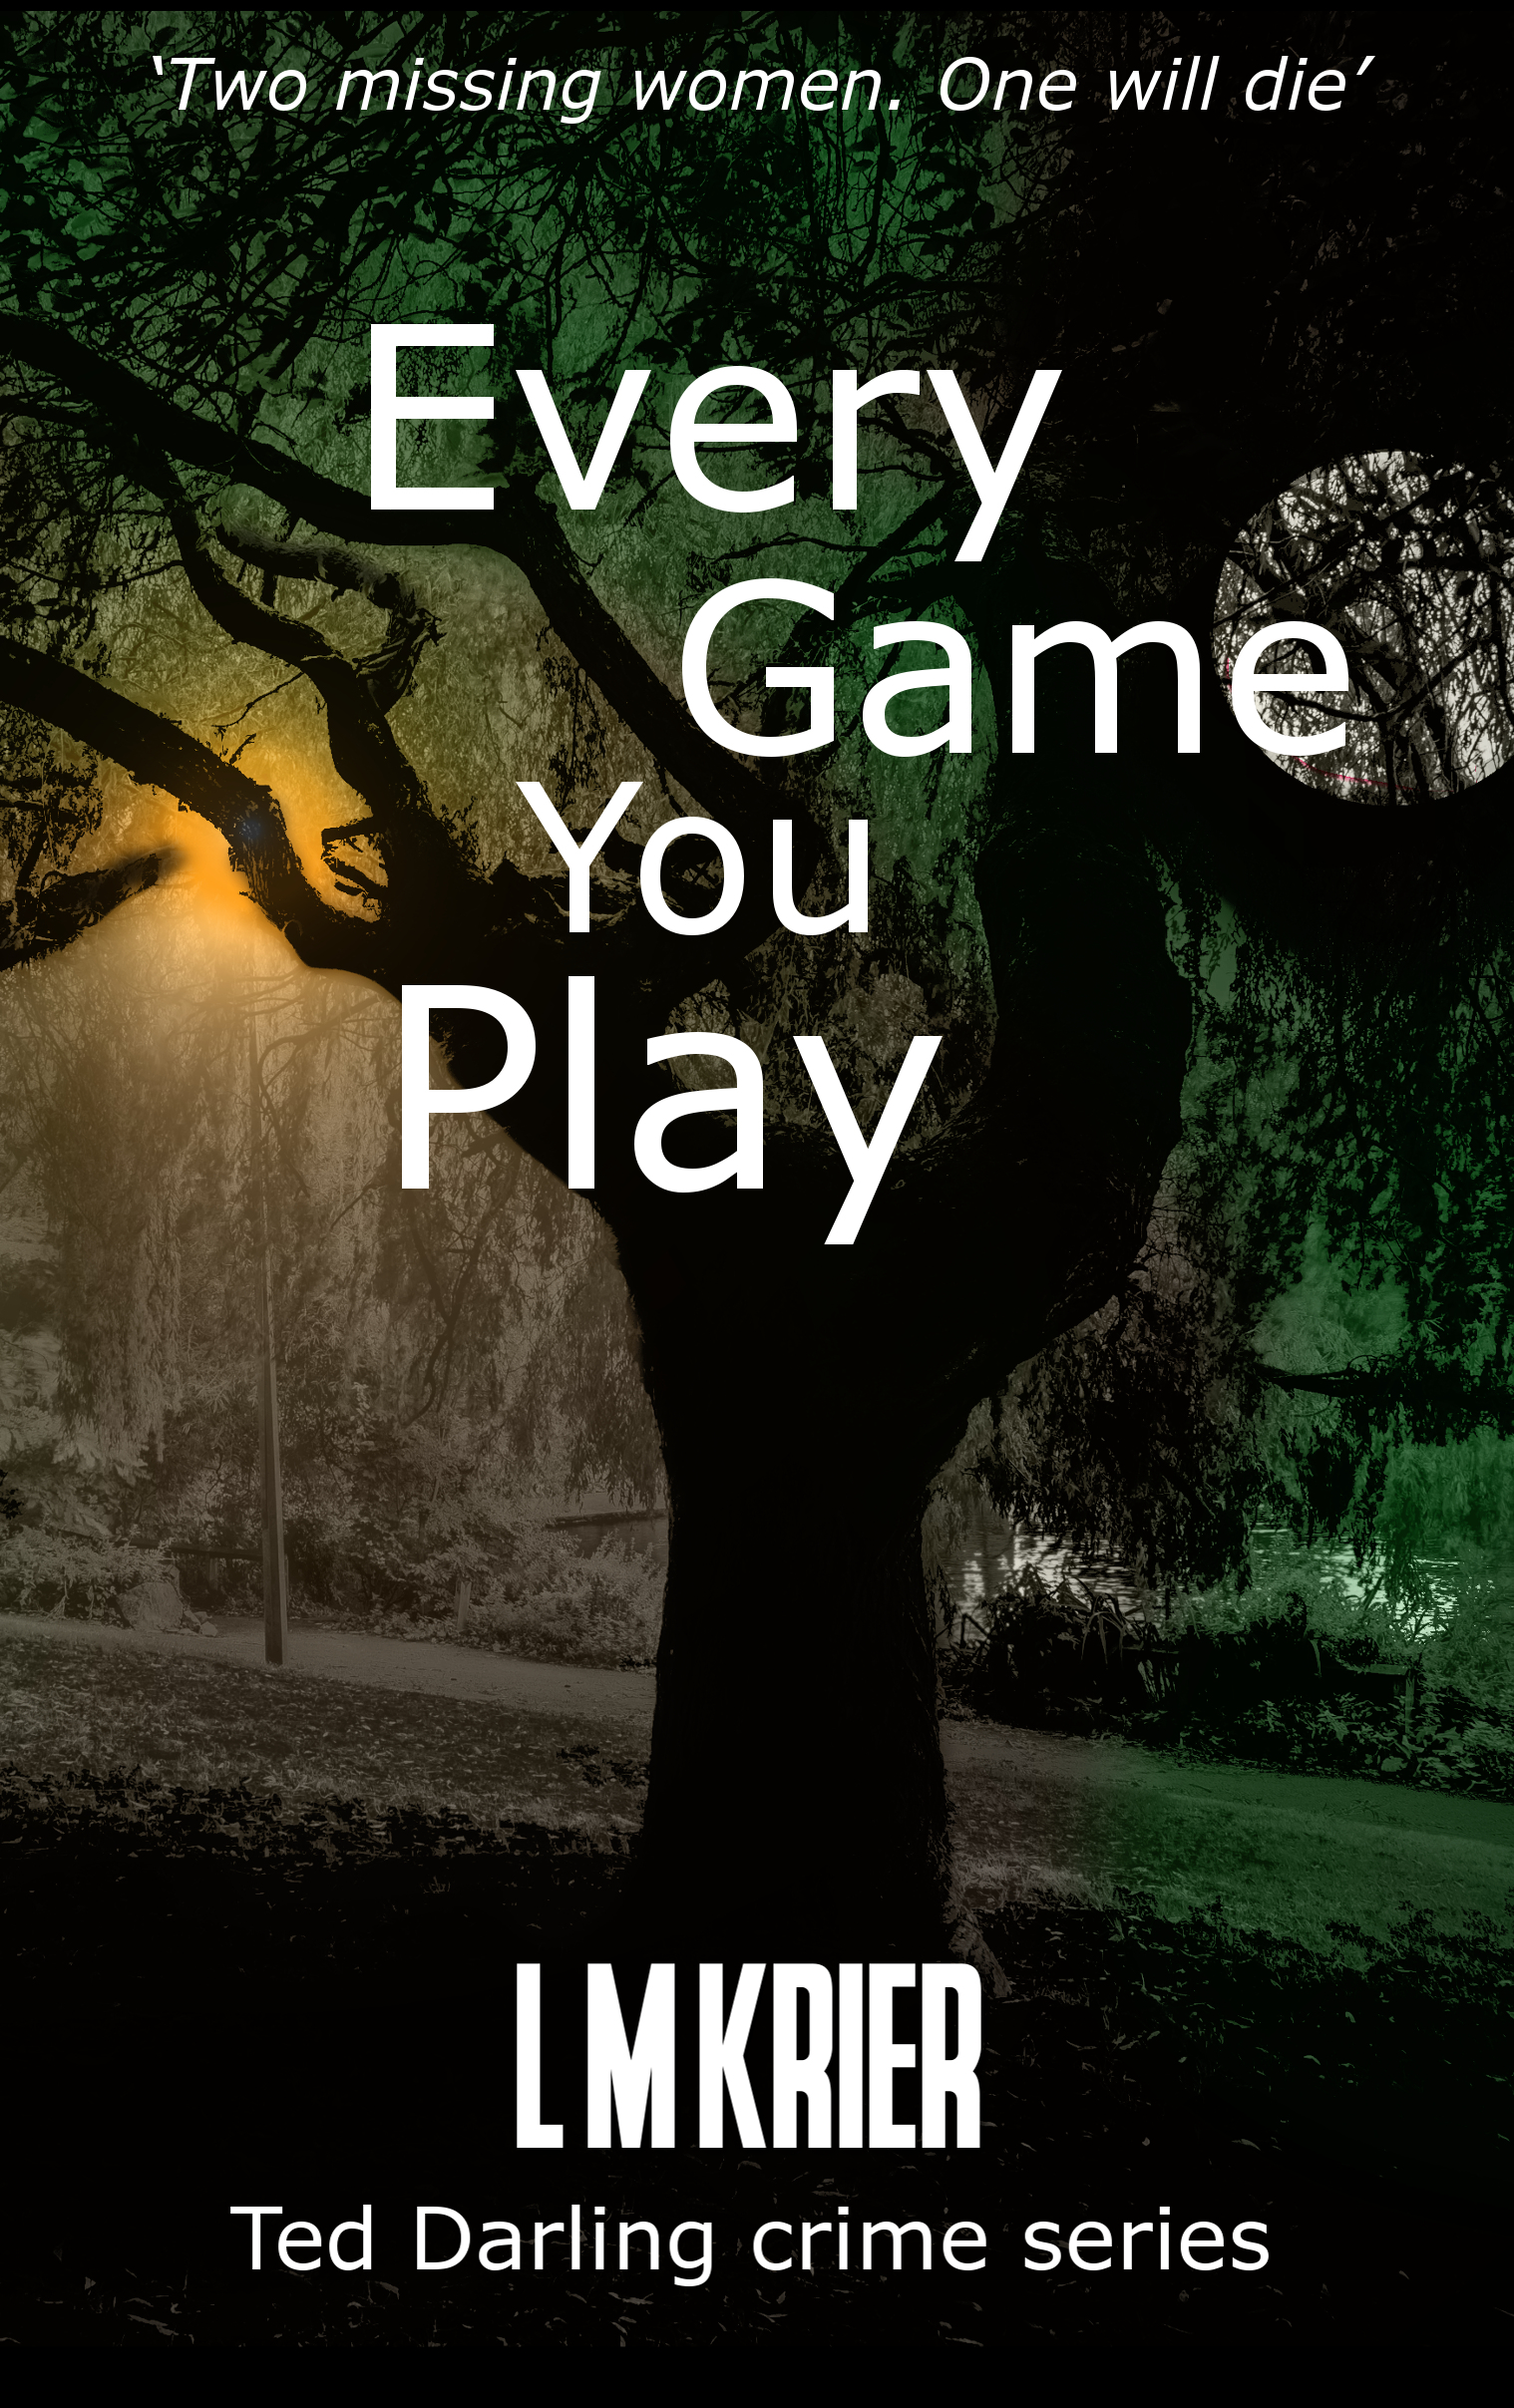 Ted Darling Crime Series - 11 - Every game You Play